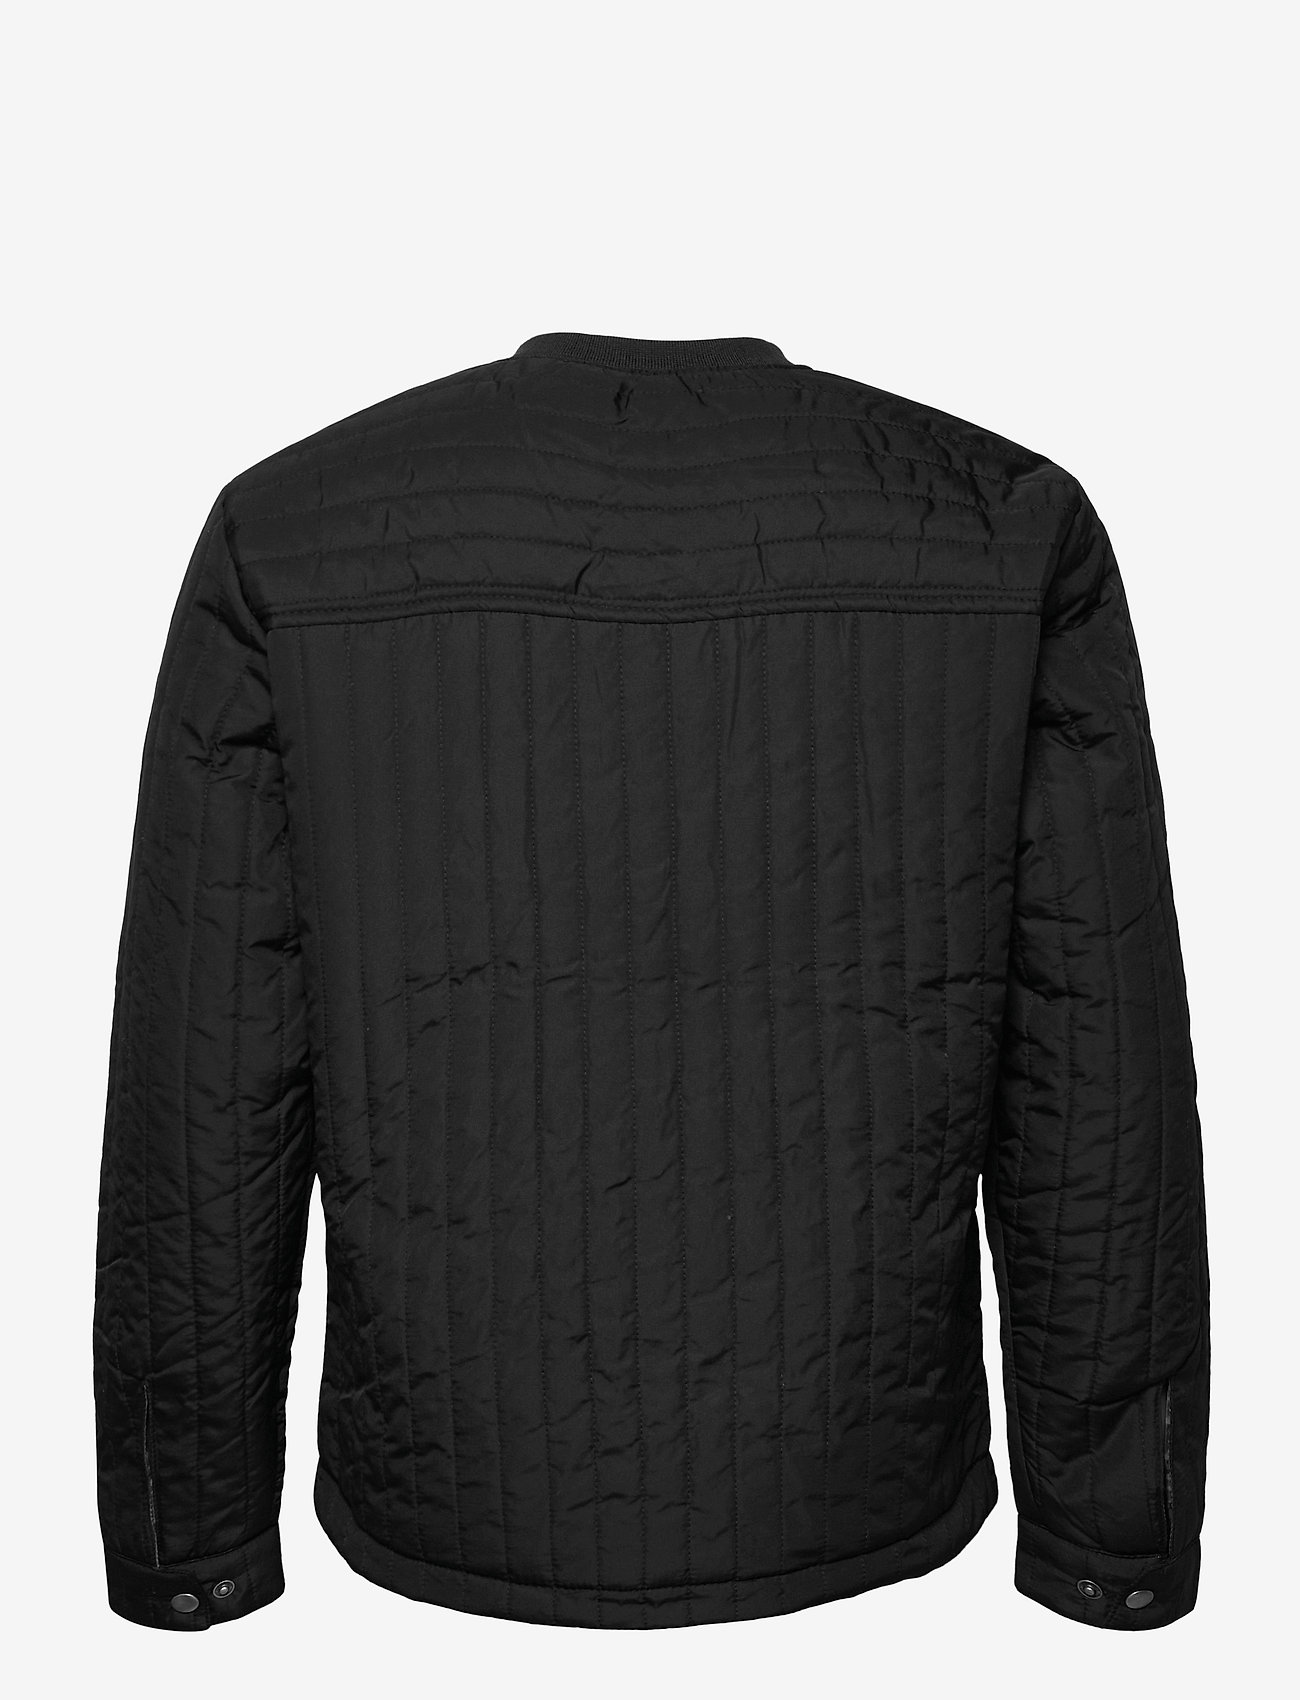 Blend - Outerwear - padded jackets - black - 1